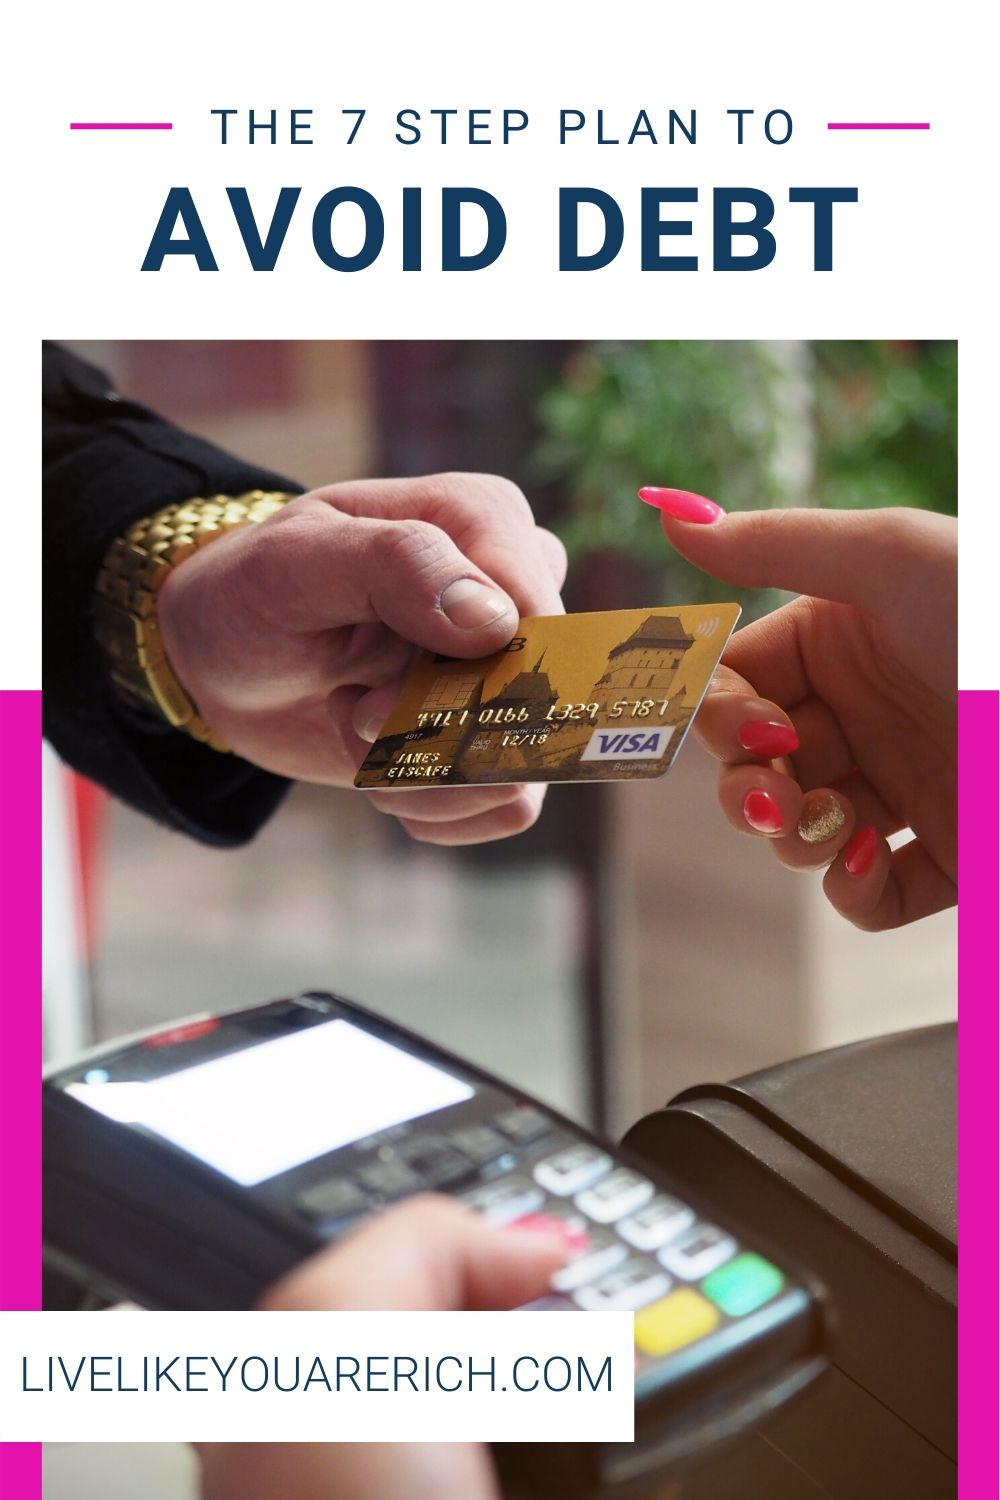 Avoid Debt. How to Avoid Debt. It is not how much you make, it is how much you keep. Here are 7 steps plan to avoid debt. #getoutofdebt #debtfree